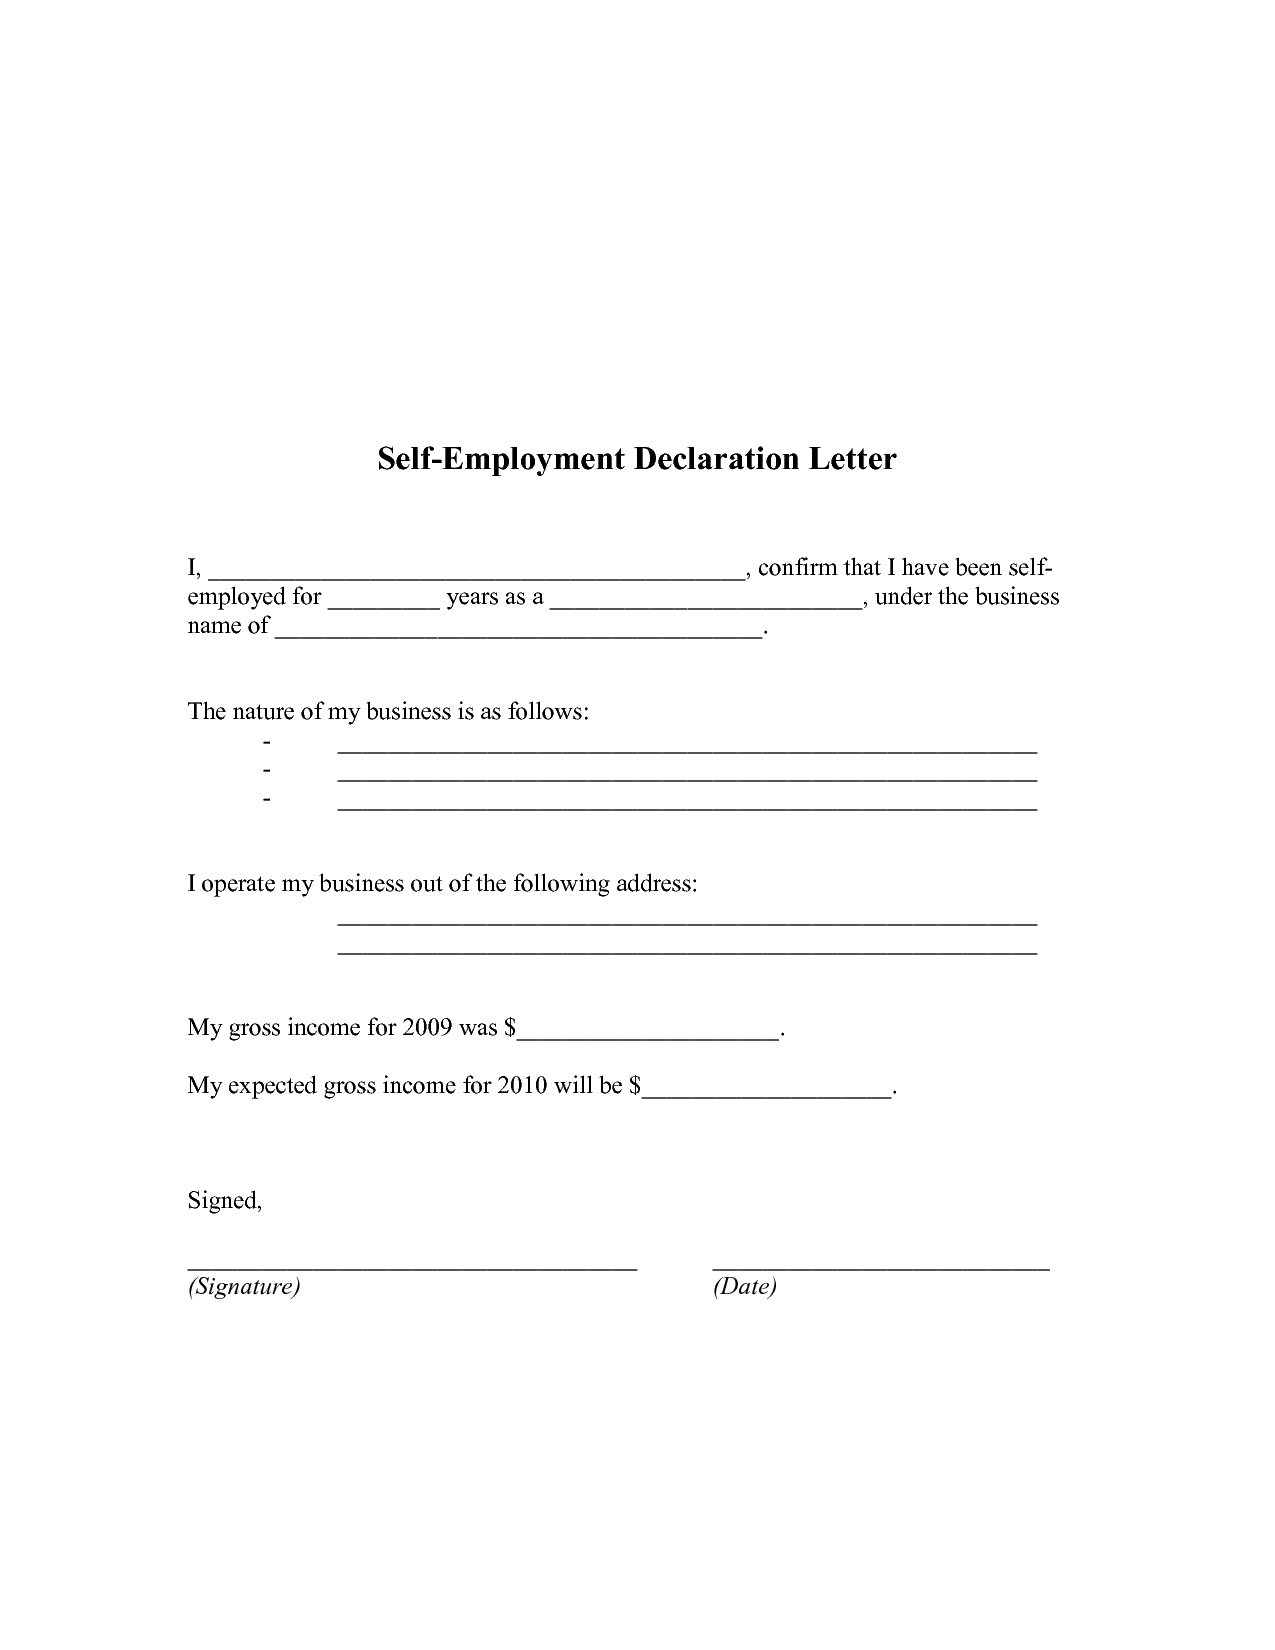 SelfEmployment Proof Of Income Letter Working At Home